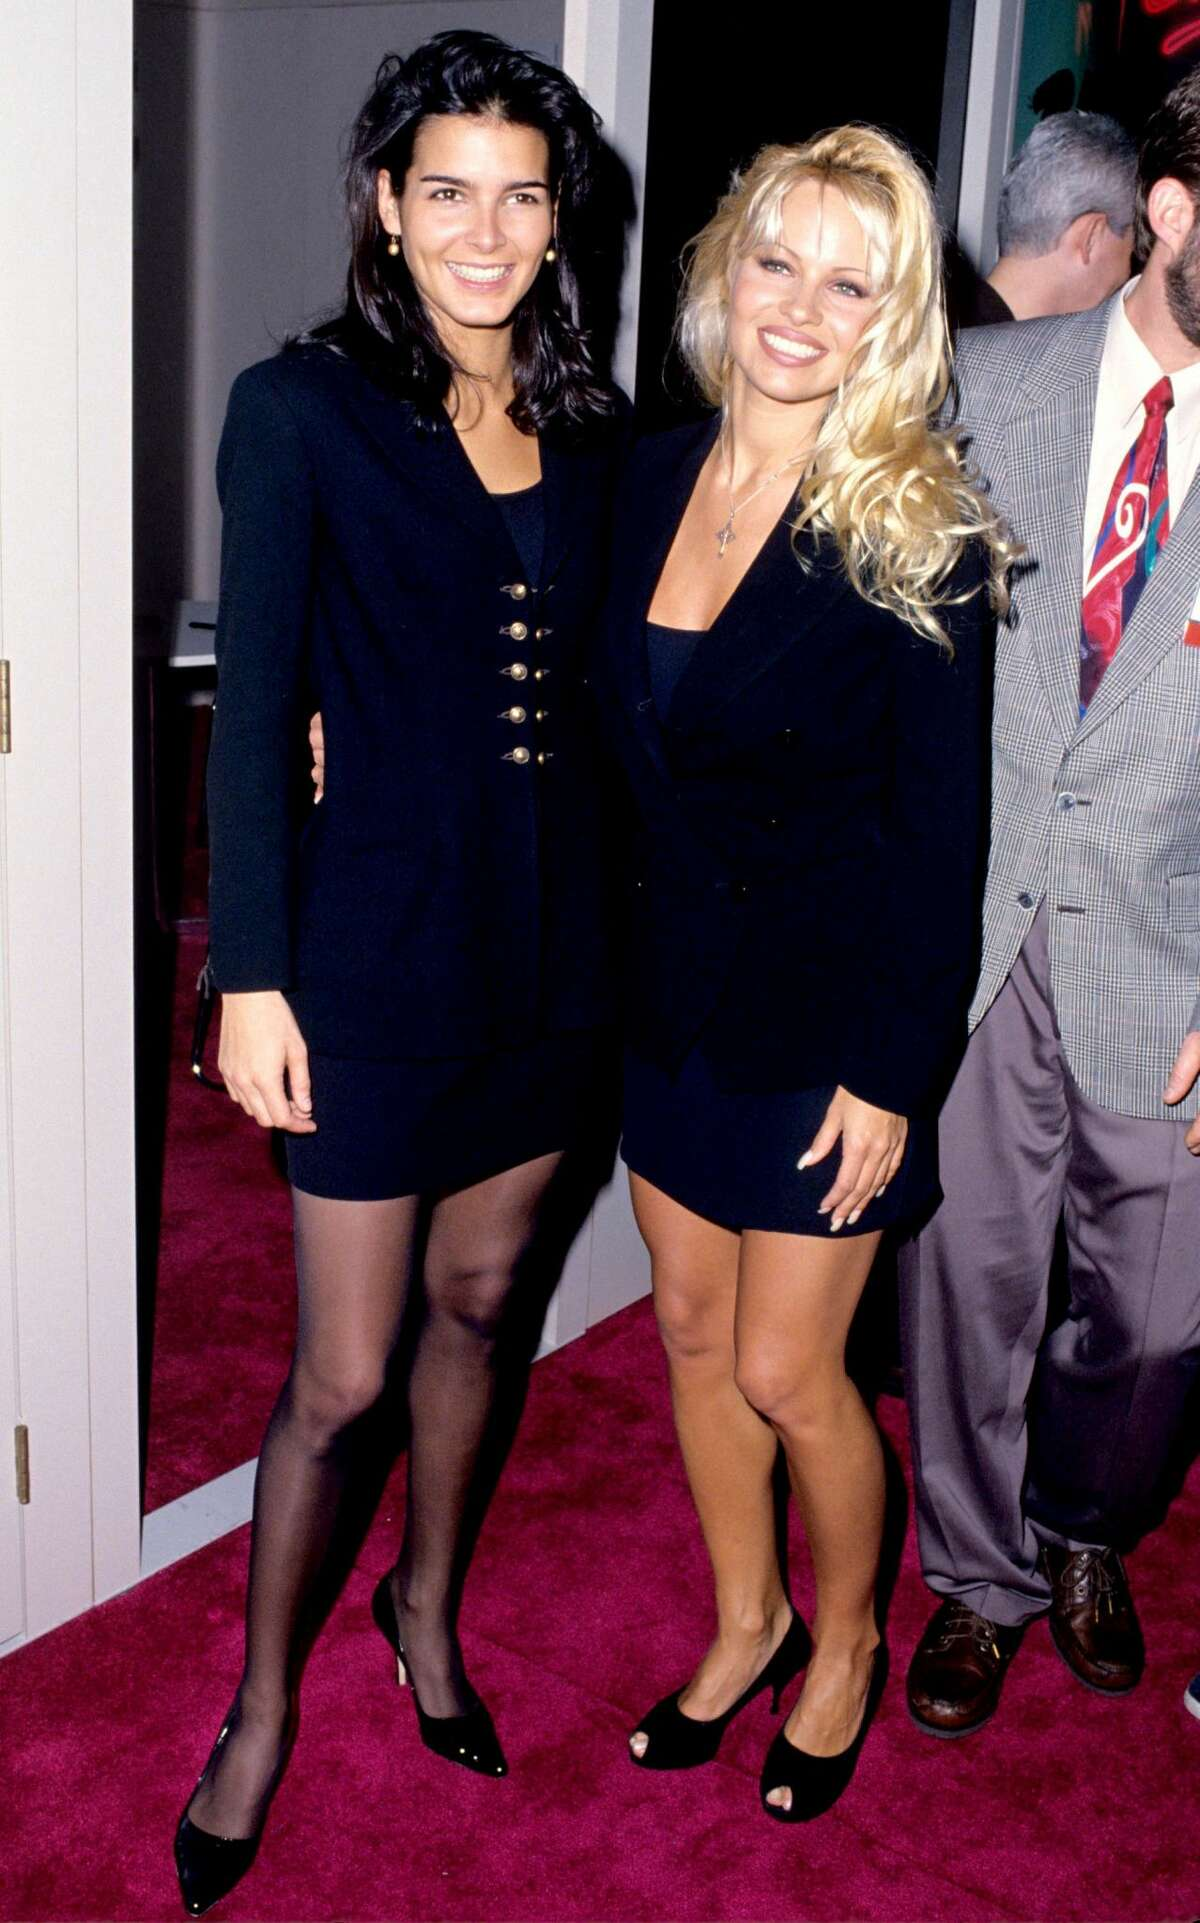 1995: Angie Harmon and Pamela Anderson